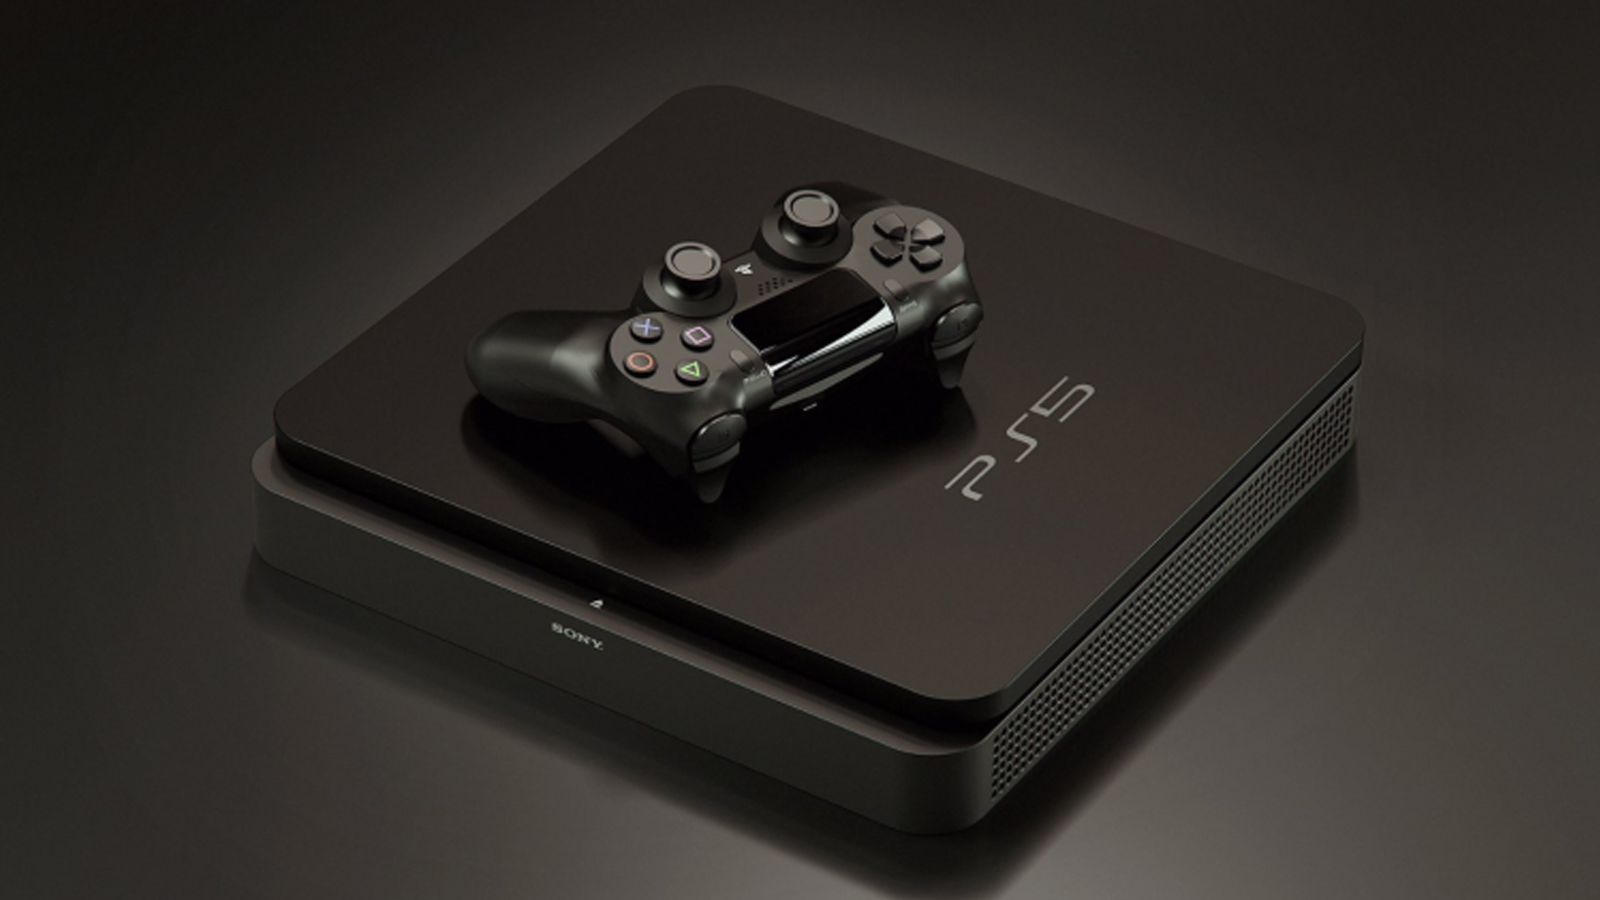 Posible render de PlayStation 5